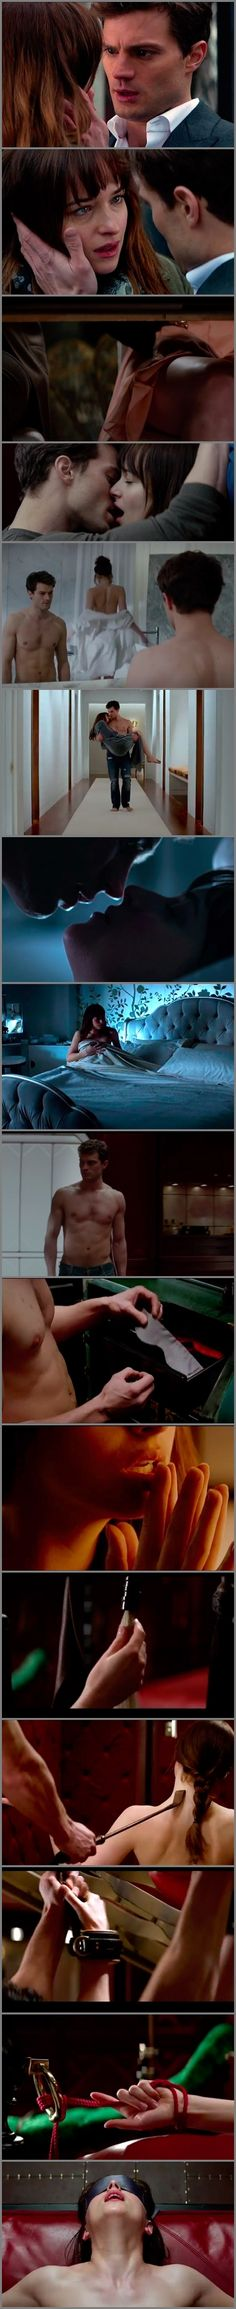 50 Shades of Grey Tr